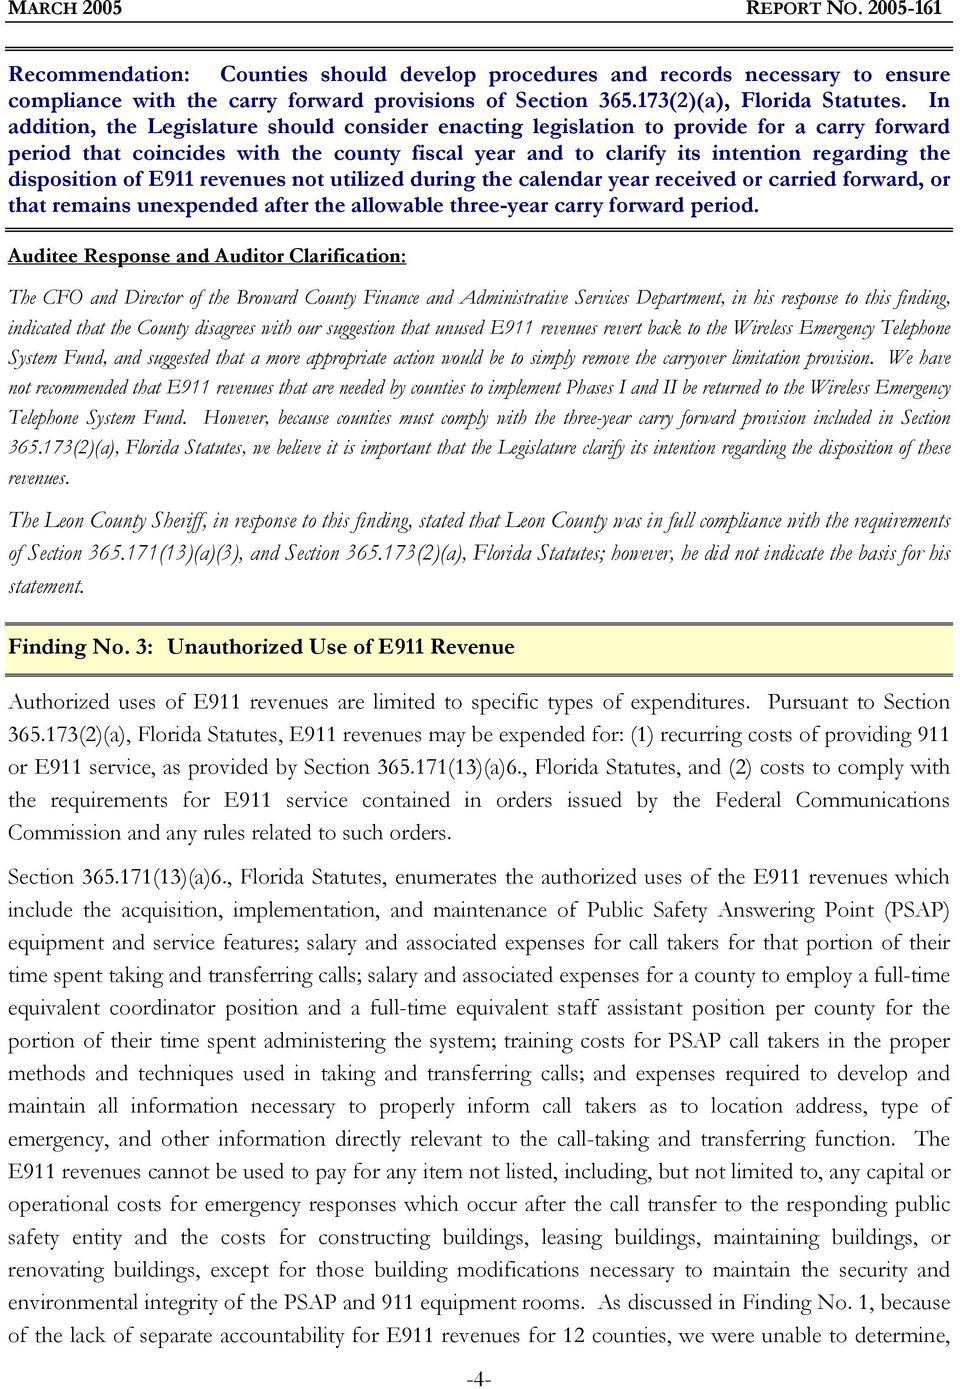 disposition of E911 revenues not utilized during the calendar year received or carried forward, or that remains unexpended after the allowable three-year carry forward period.